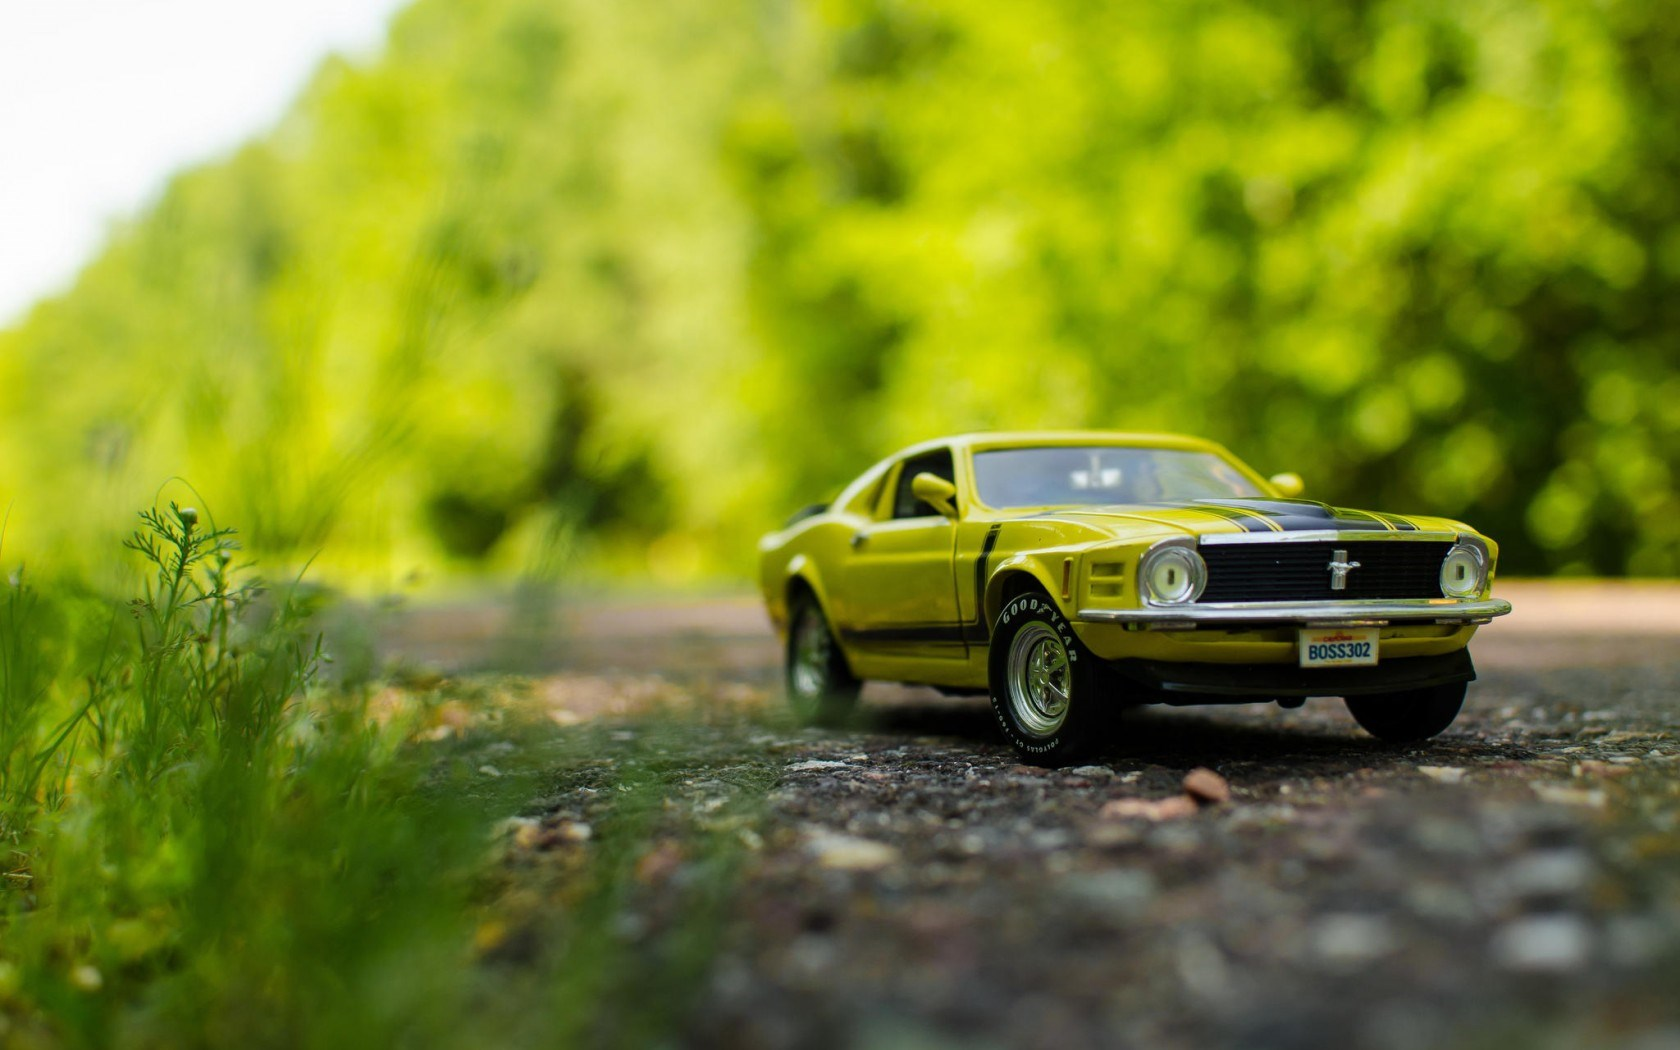 12 outstanding hd toy car wallpapers - stunning hd wallpapers and